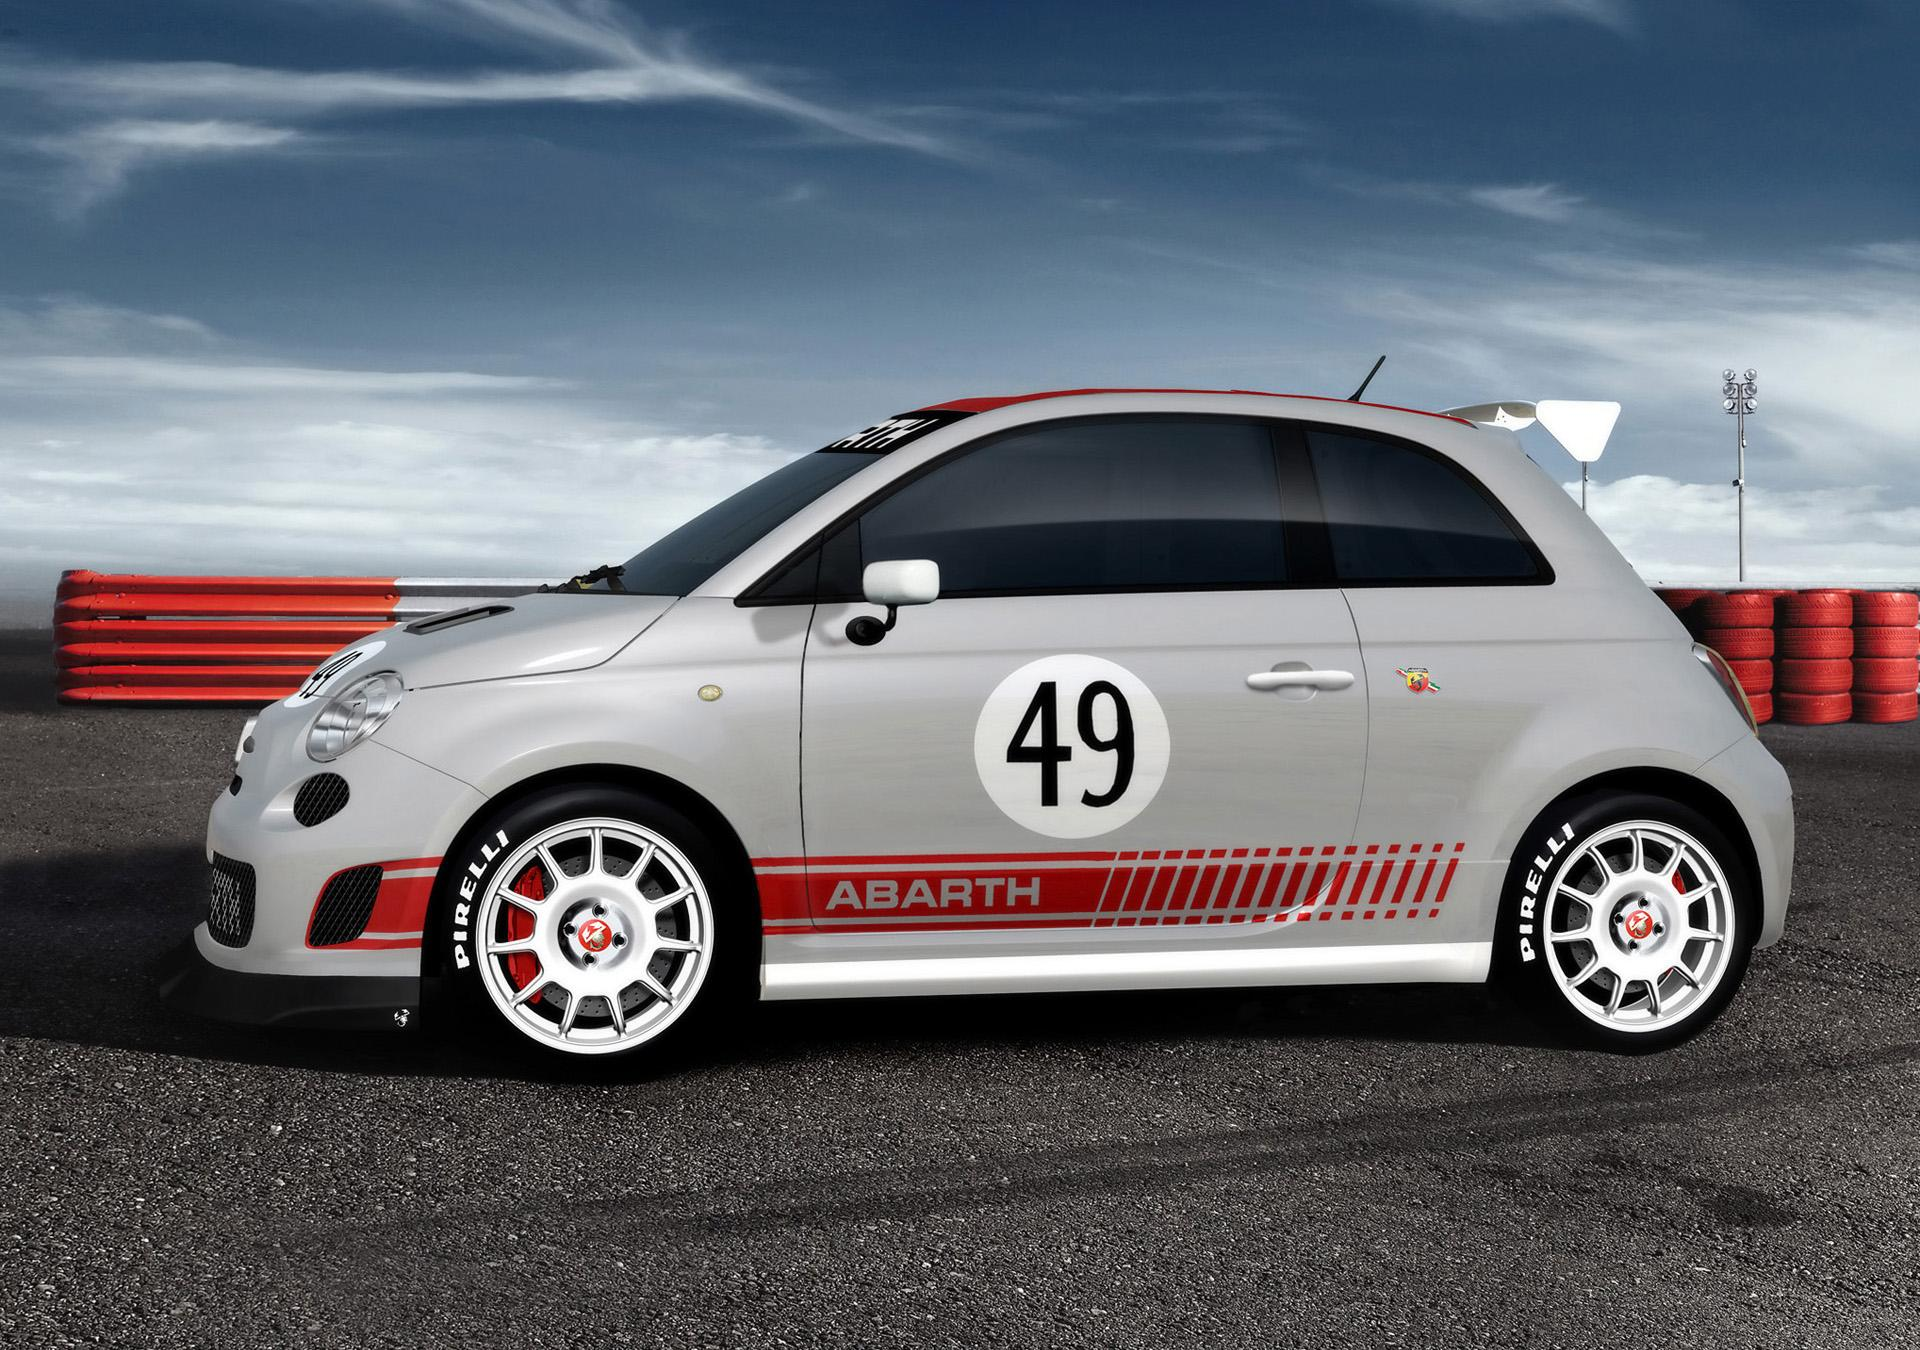 2008 Abarth 500 Assetto Corse Image Https Www